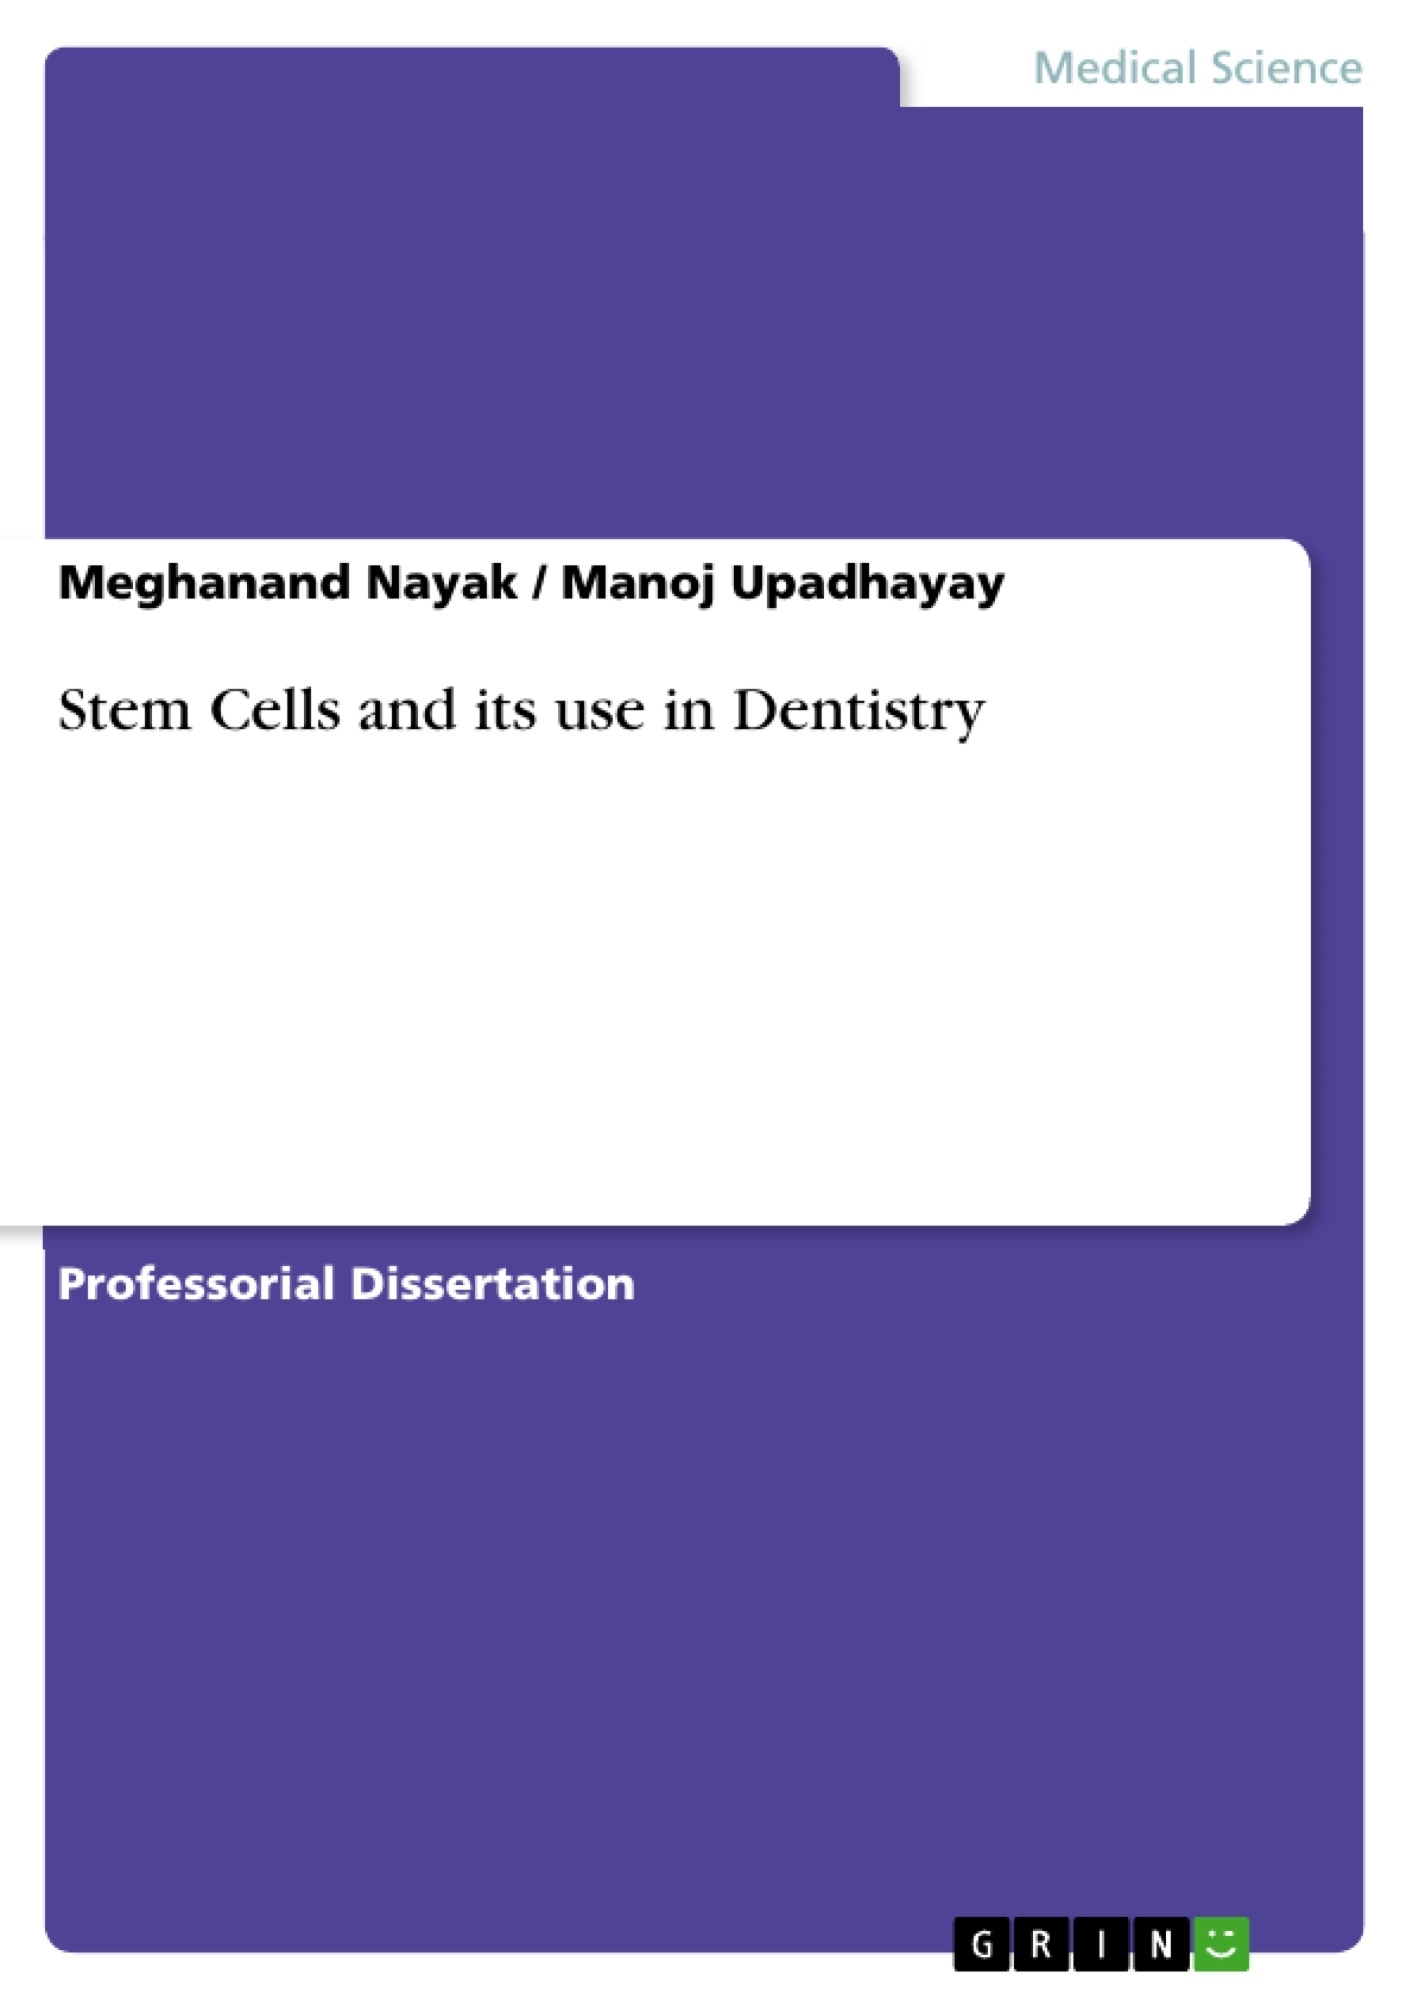 GRIN - Stem Cells and its use in Dentistry